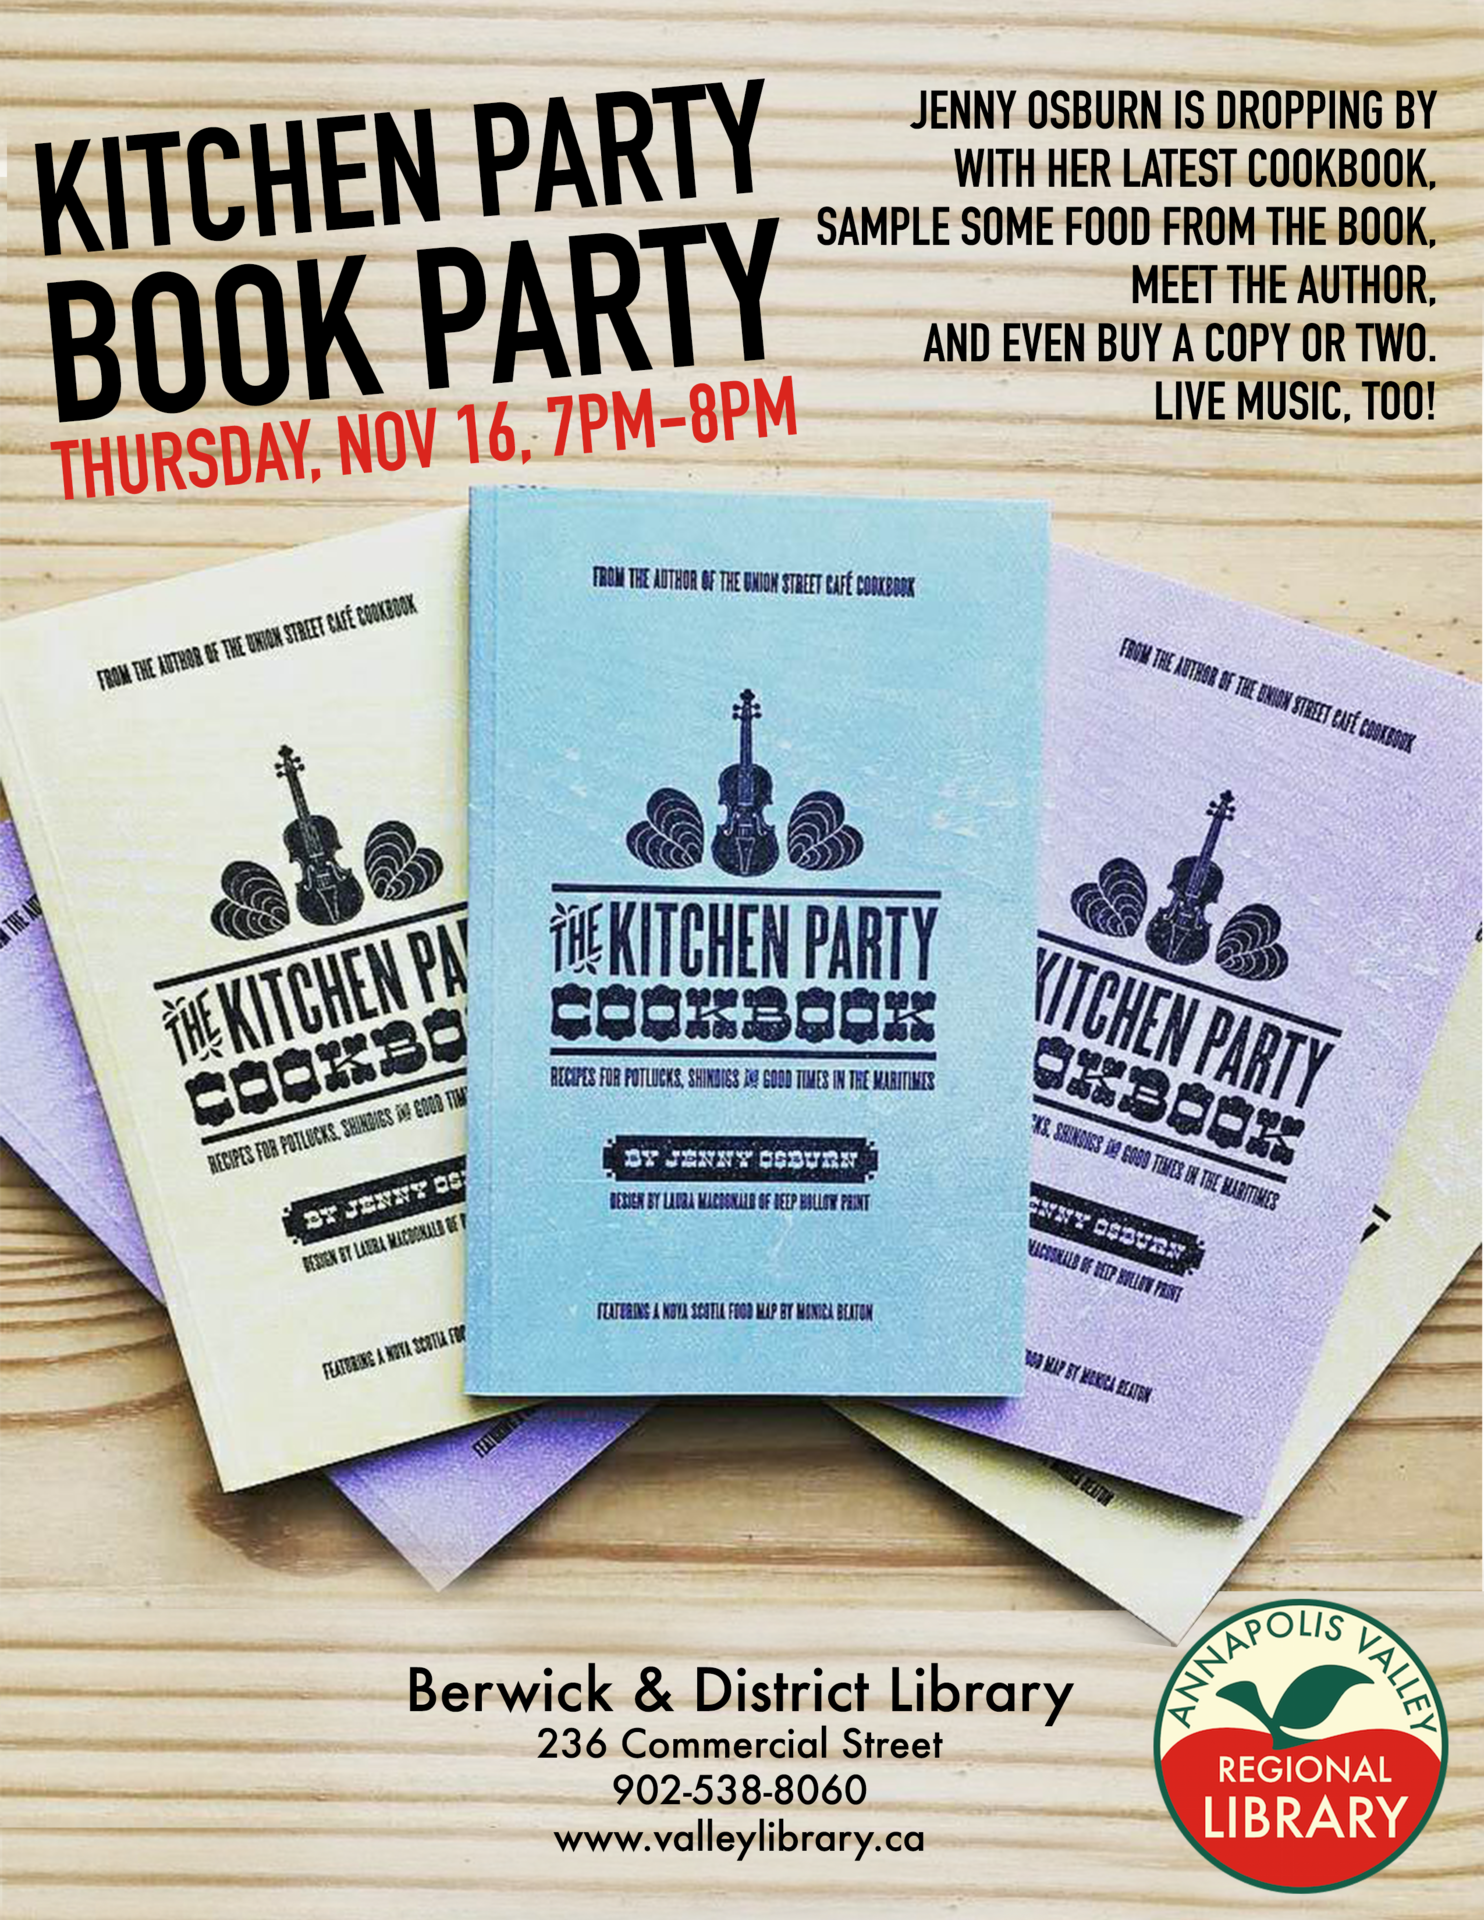 Kitchen Party Book Party at Berwick and District Library, Berwick ...